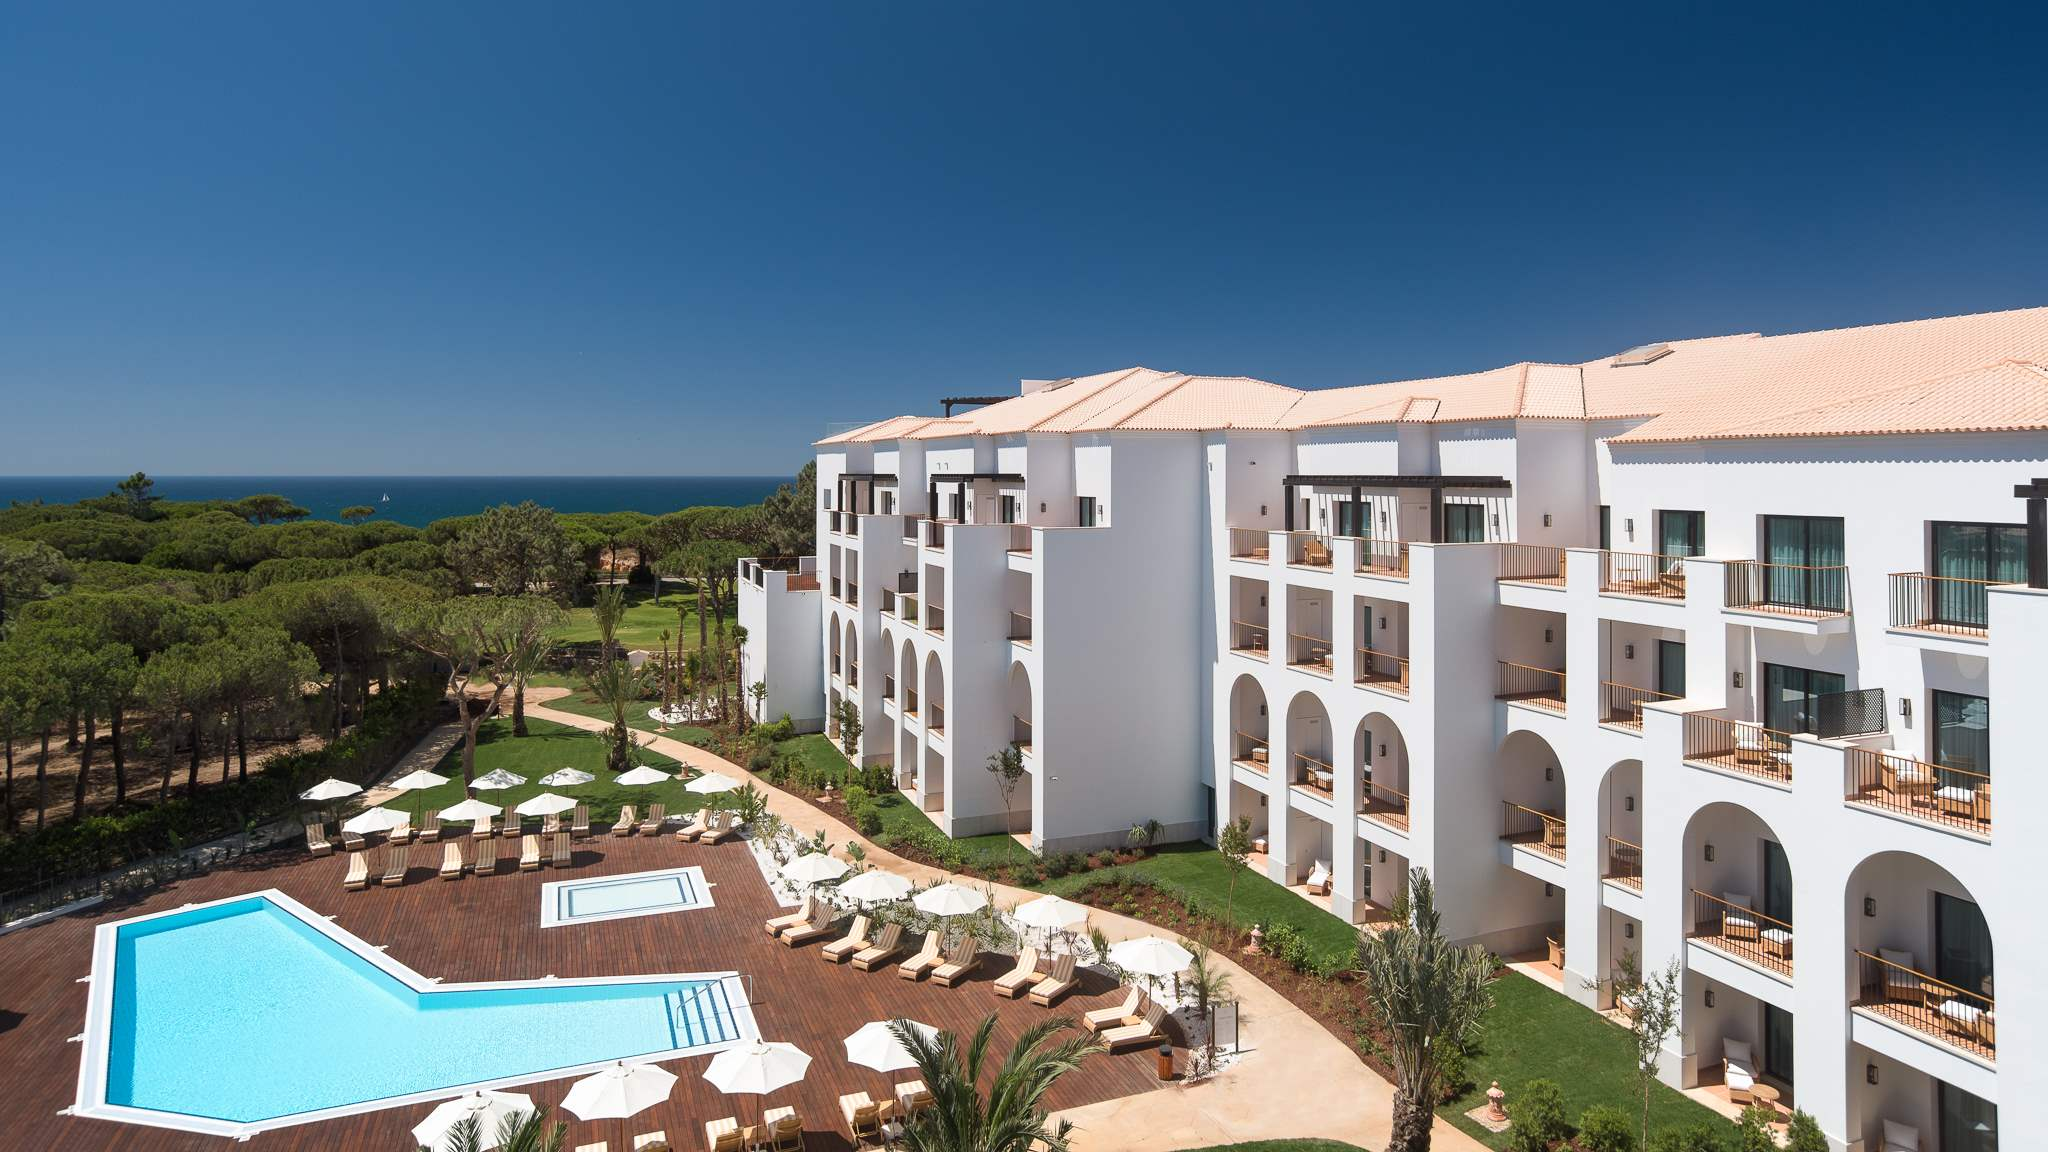 Pine Cliffs Ocean Suites, One Bedroom Apt, Penthouse Apt, 1 bedroom apartment in Pine Cliffs Resort, Algarve Photo #11